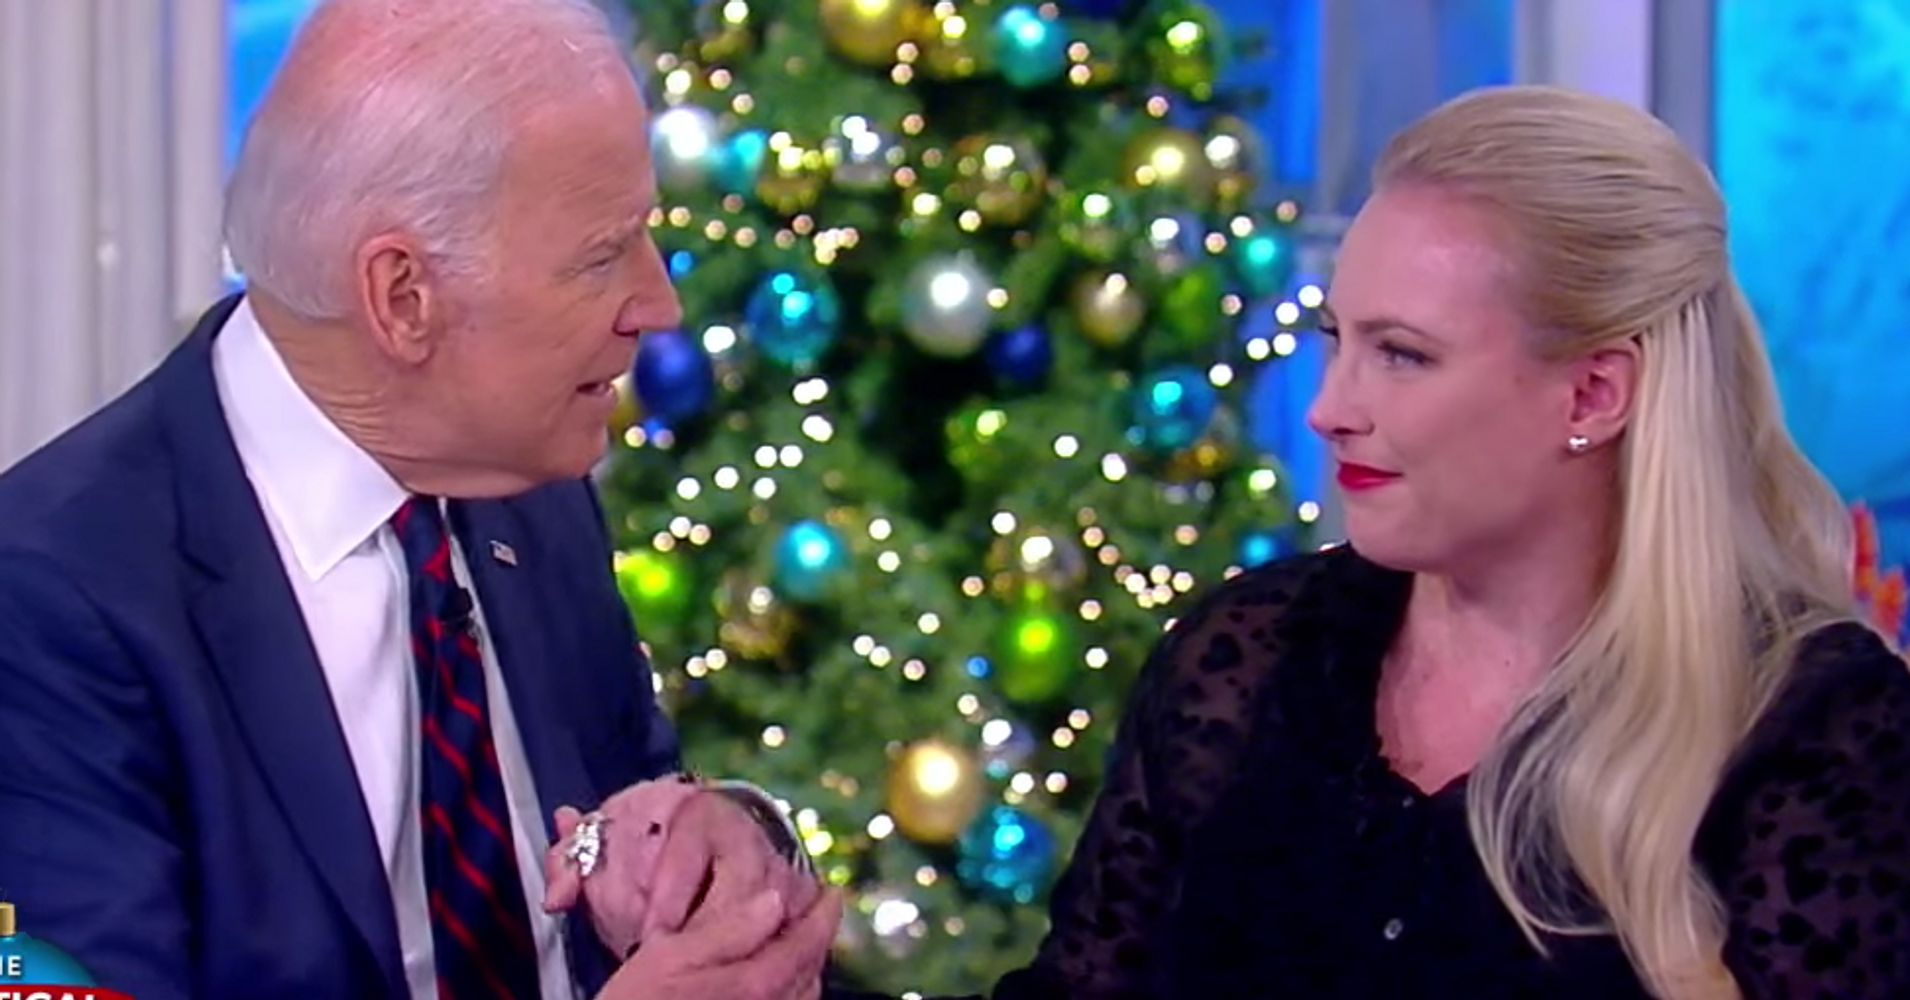 Joe Biden Holds Meghan McCain's Hand In Emotional Moment On 'The View'